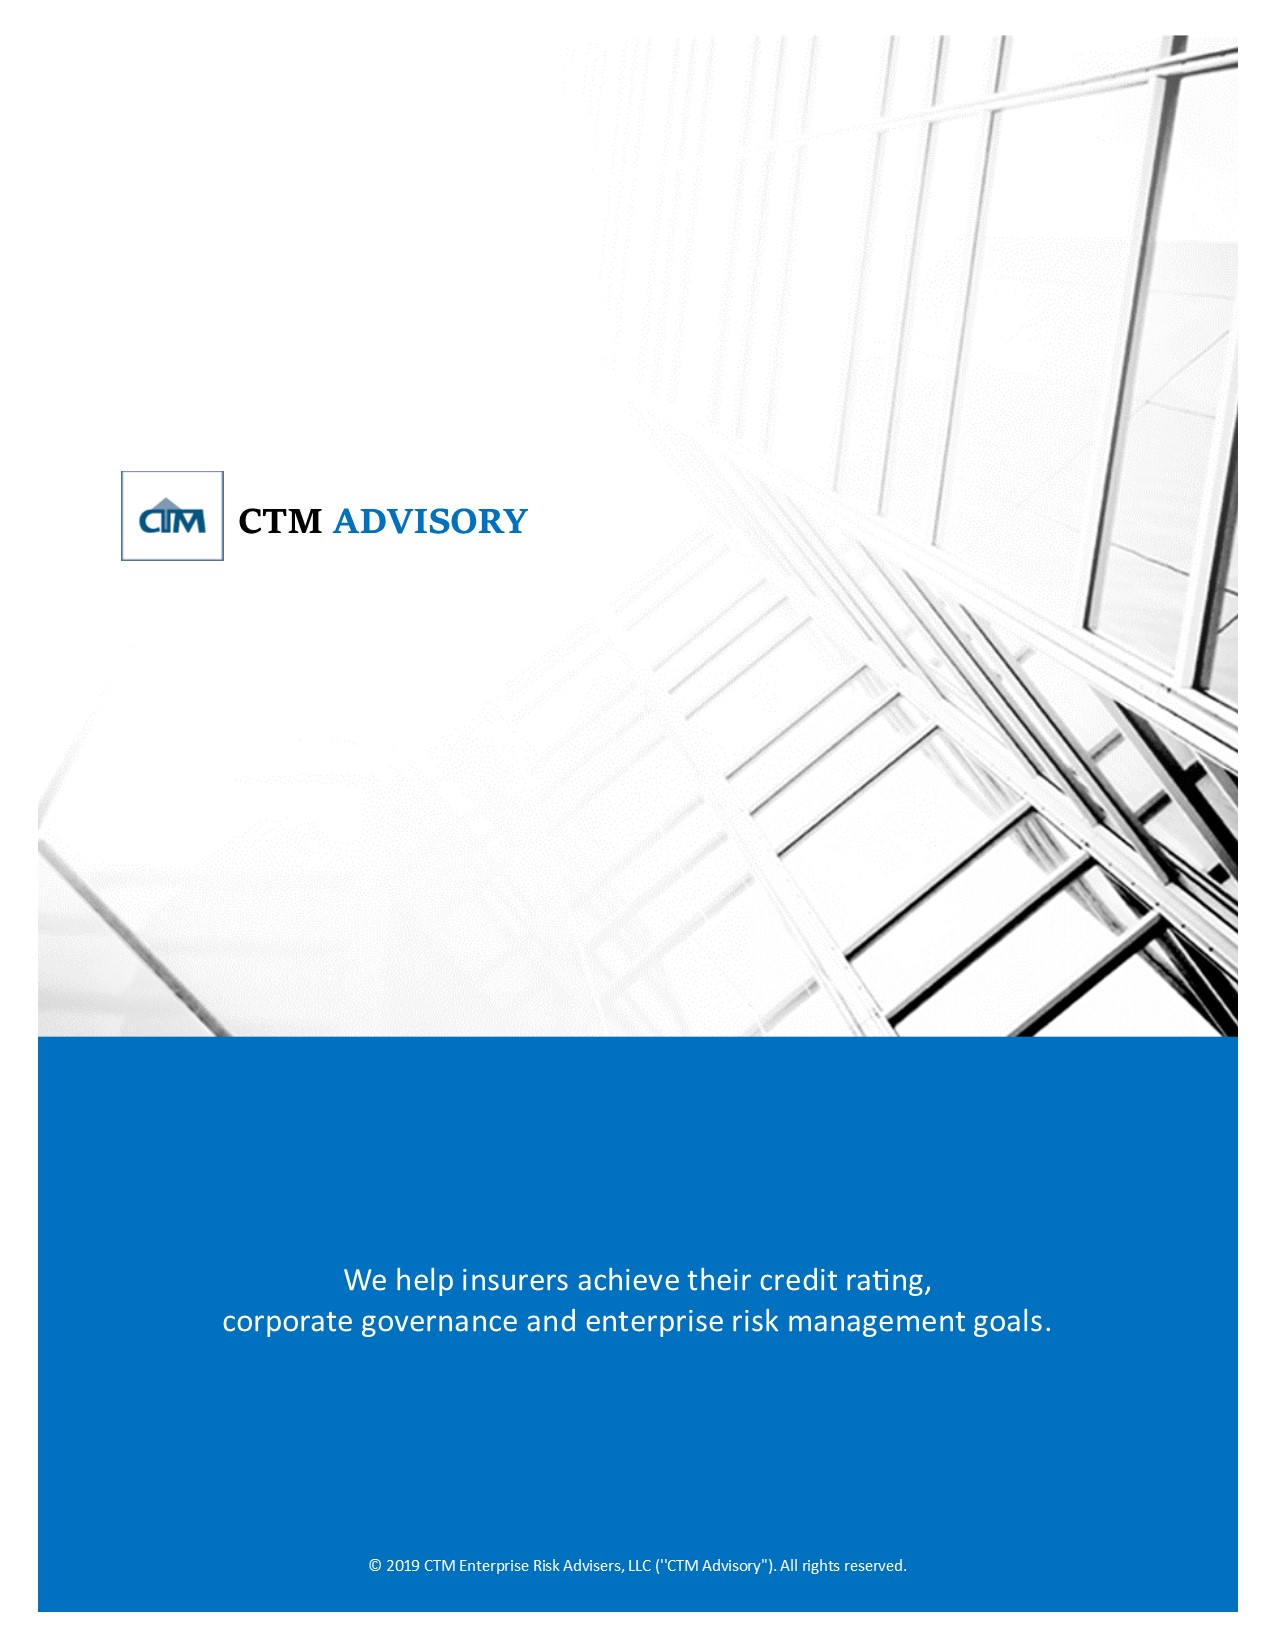 CTM Advisory's Business Services